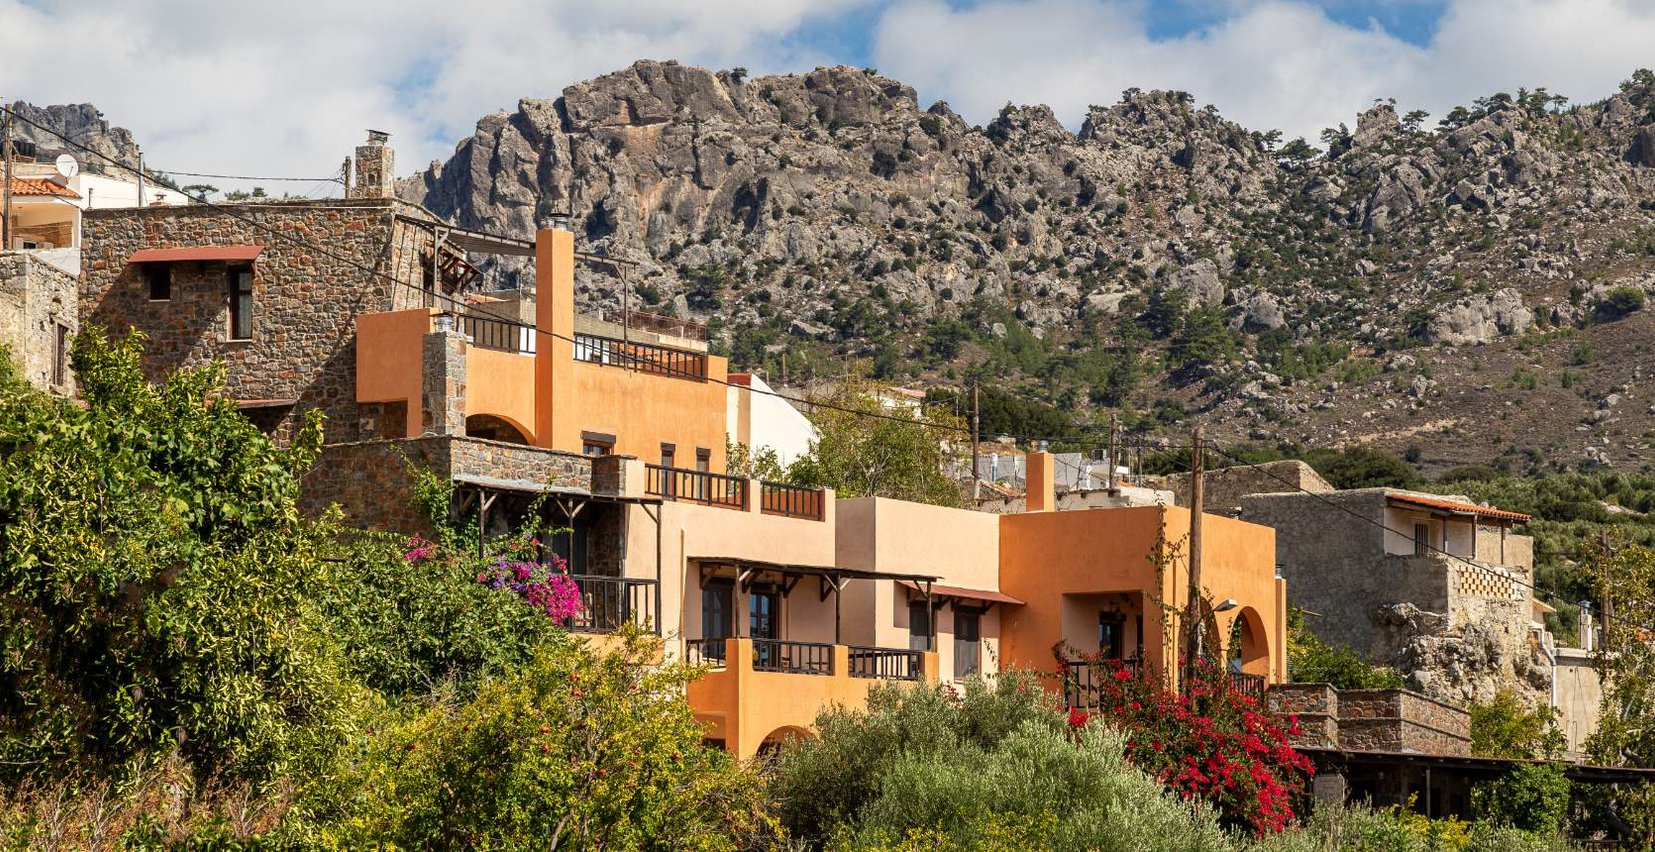 Mala Villa surrounded by plants, with the mountains in the background